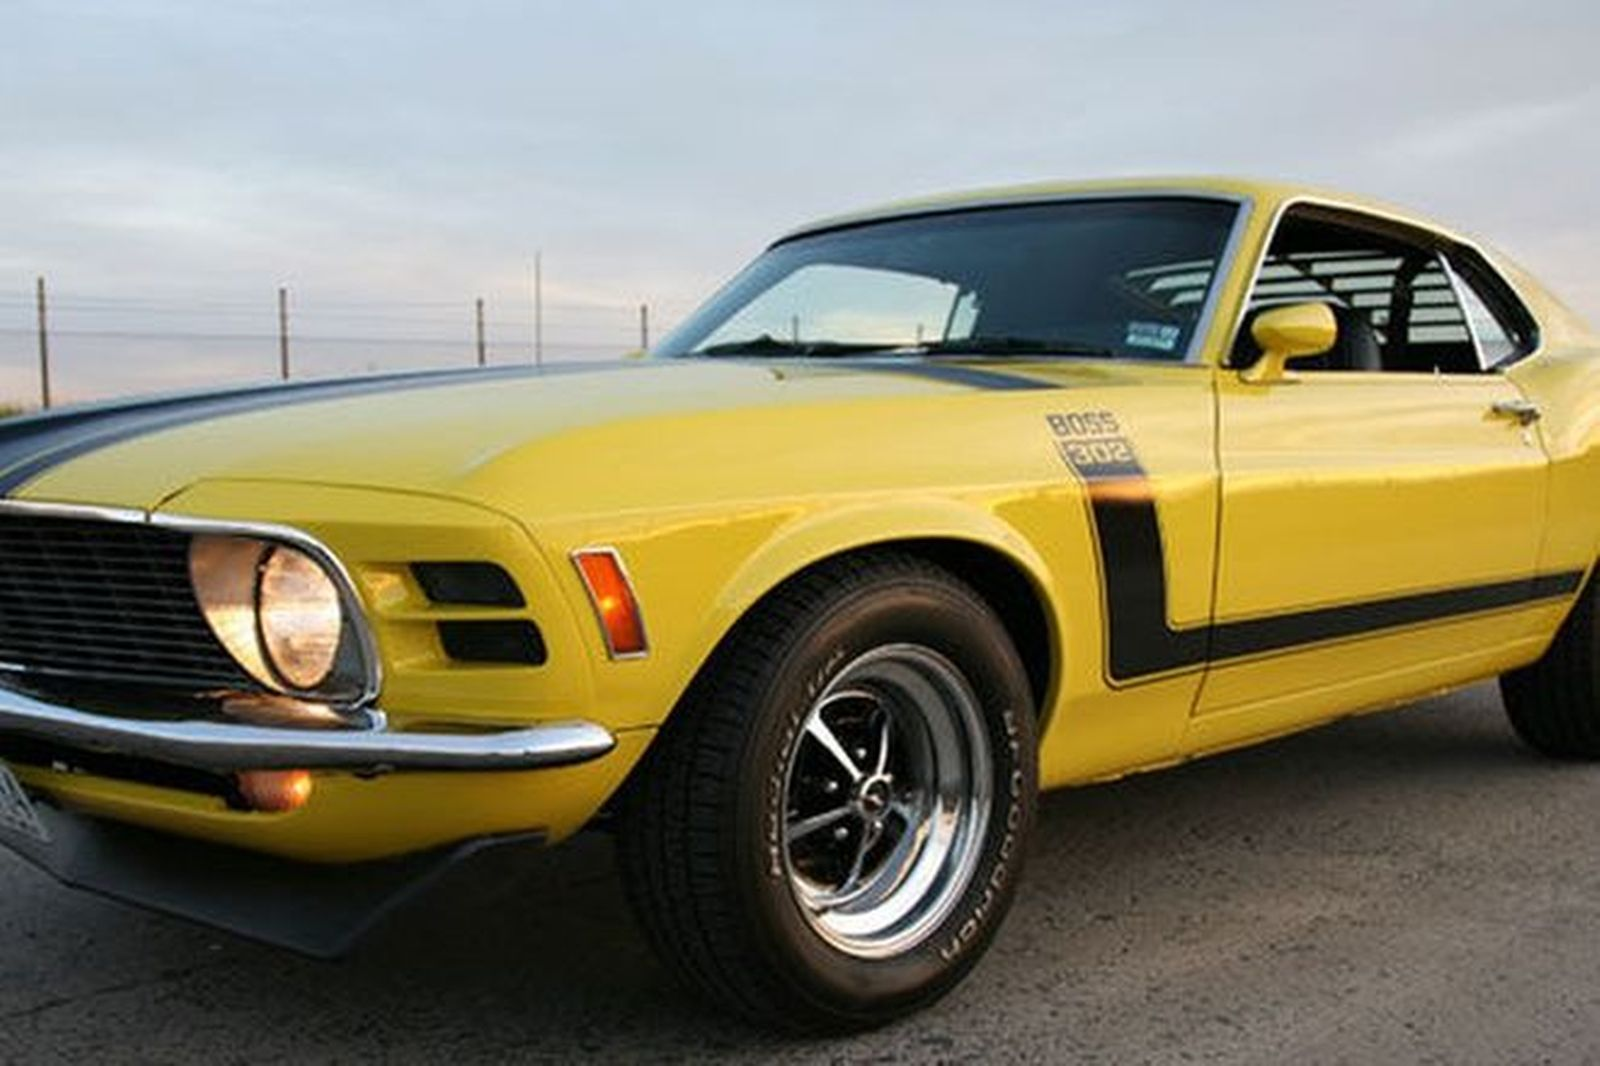 Ford Mustang Boss 302 Fastback (RHD)